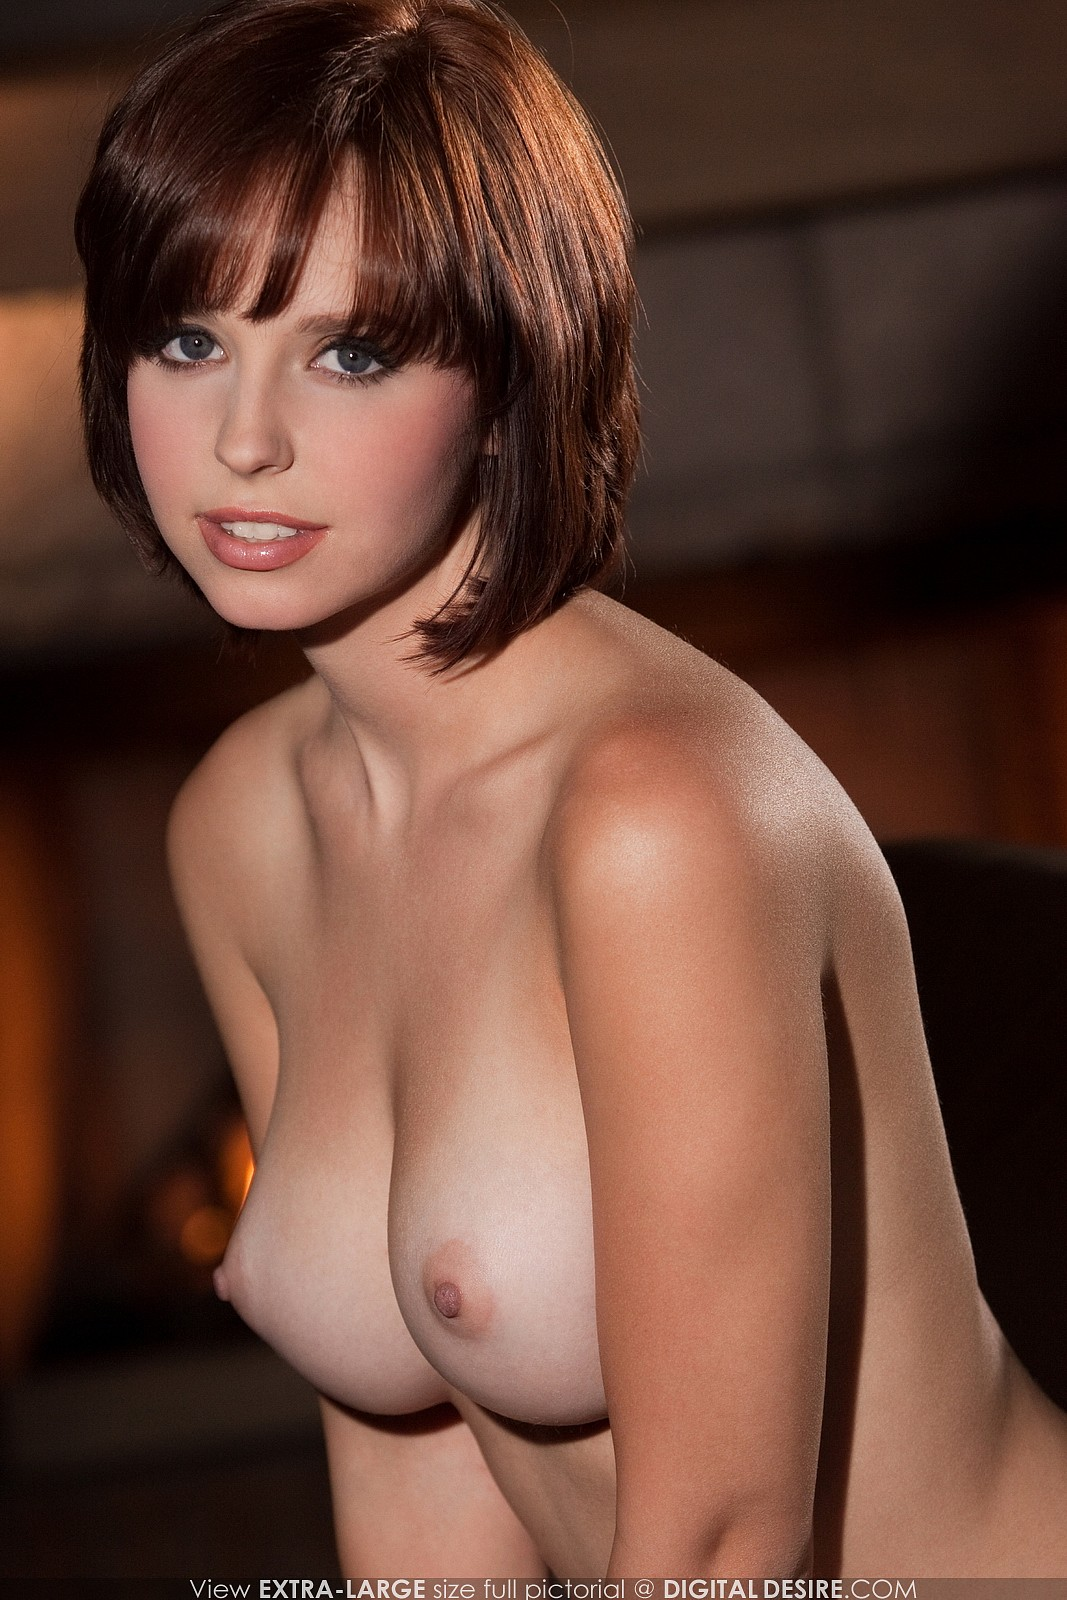 Kate hockly nude in playboy